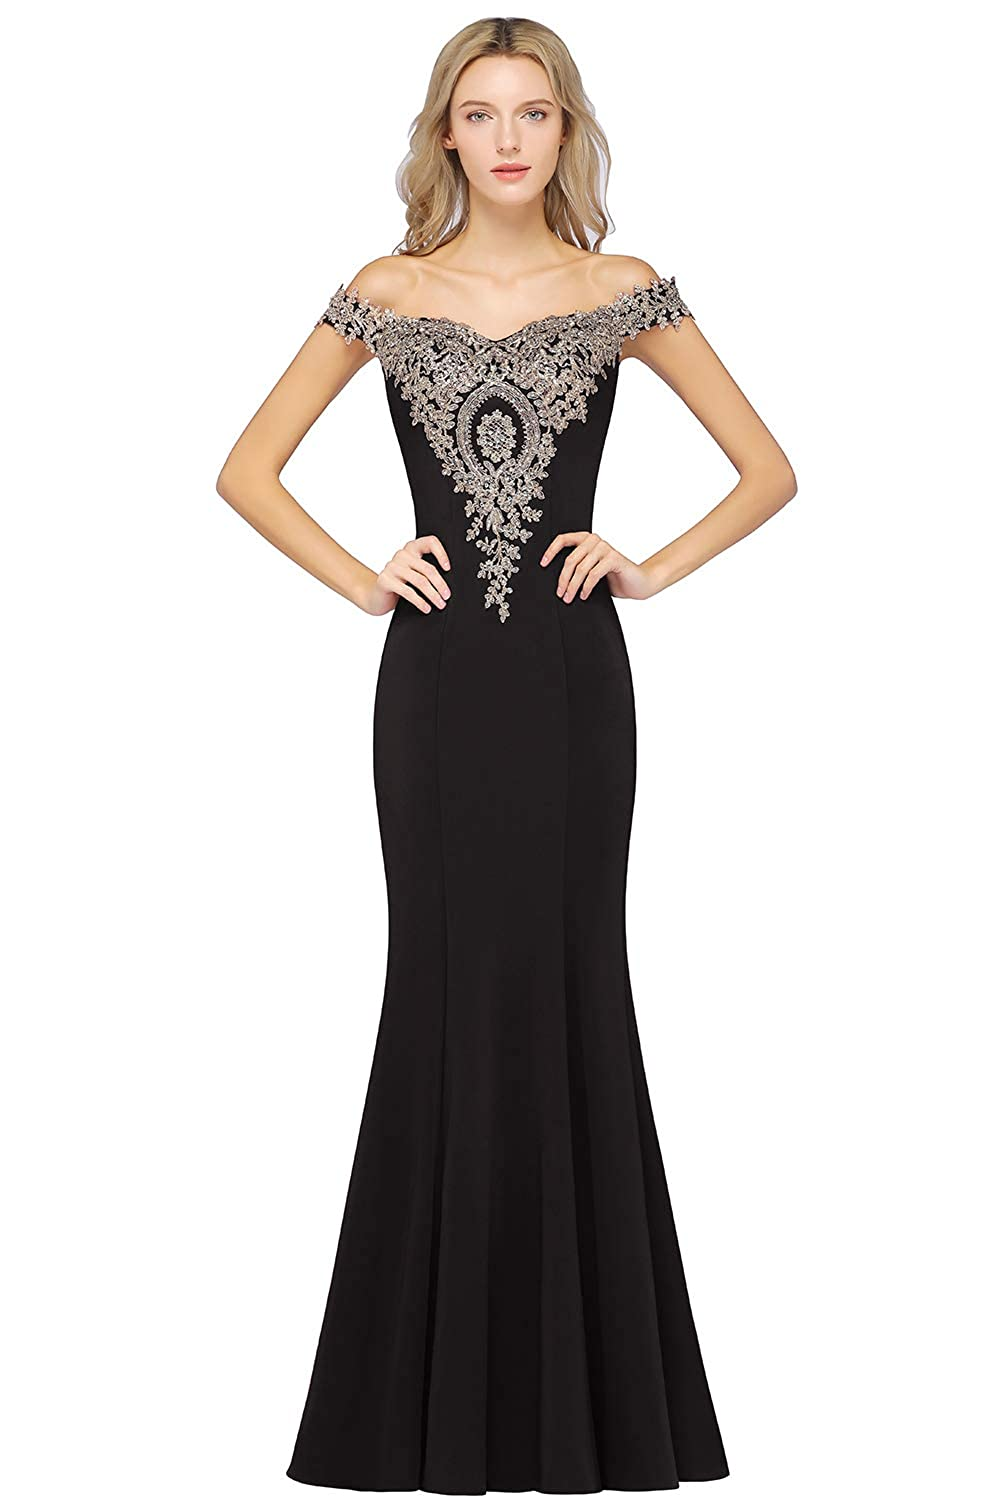 5520be77dc3d MisShow Off-Shoulder Gold Appliques Mermaid Long Evening Formal Prom Dresses  for Women at Amazon Women's Clothing store: